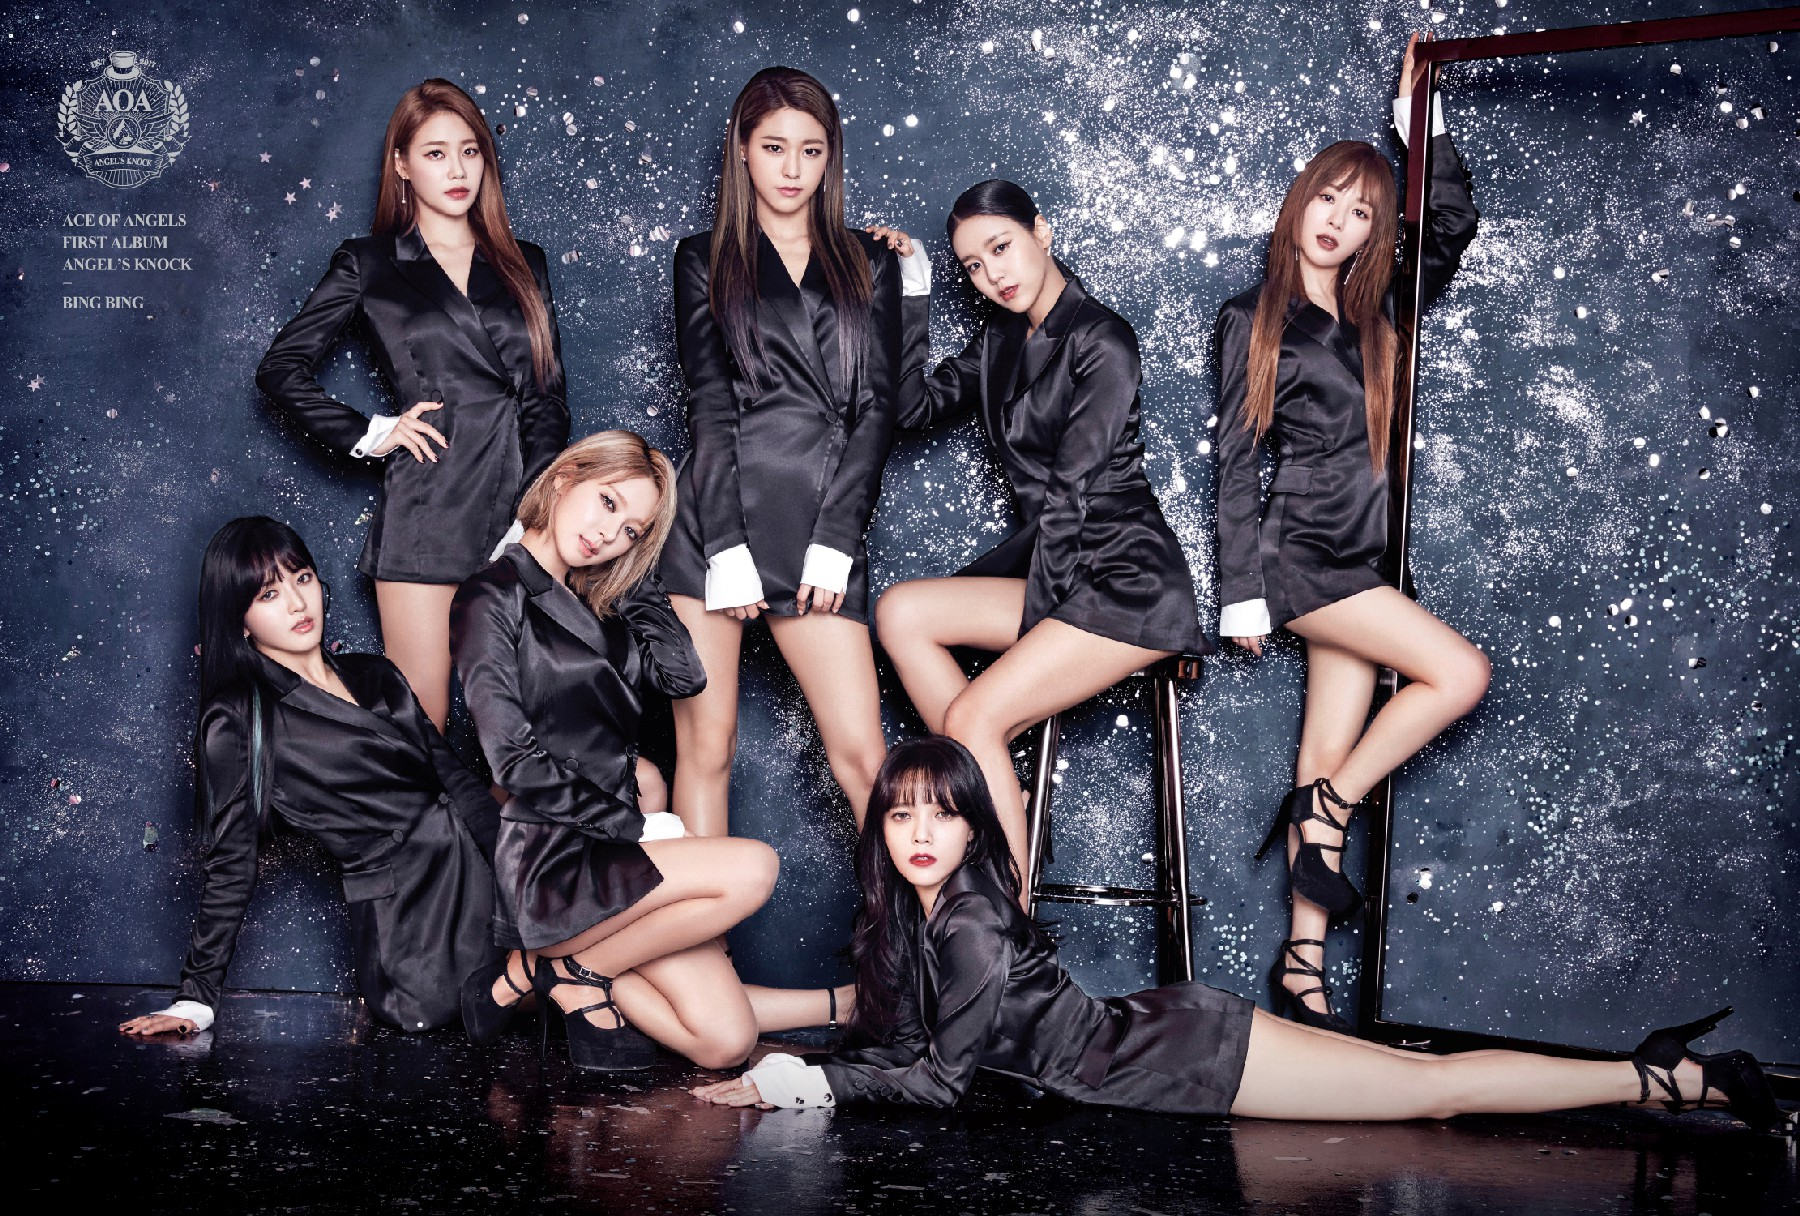 AOA makes a New Year Comeback with 2 Brand New MVs